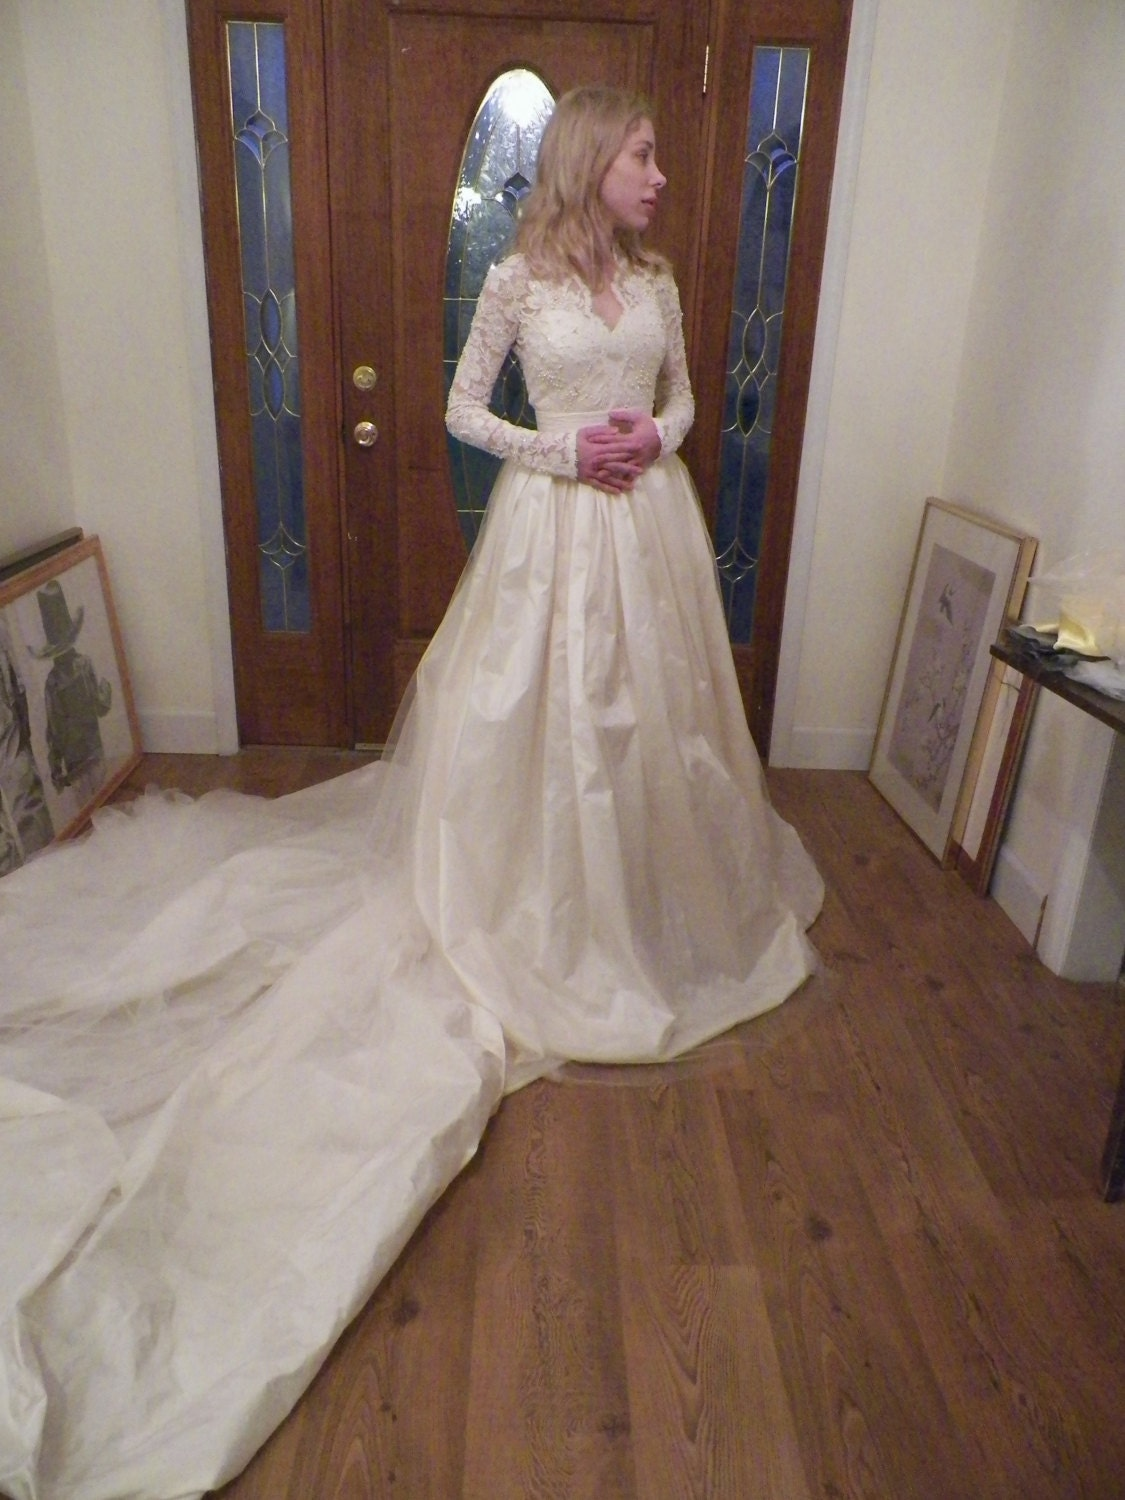 Jays wedding gown with no crinoline support